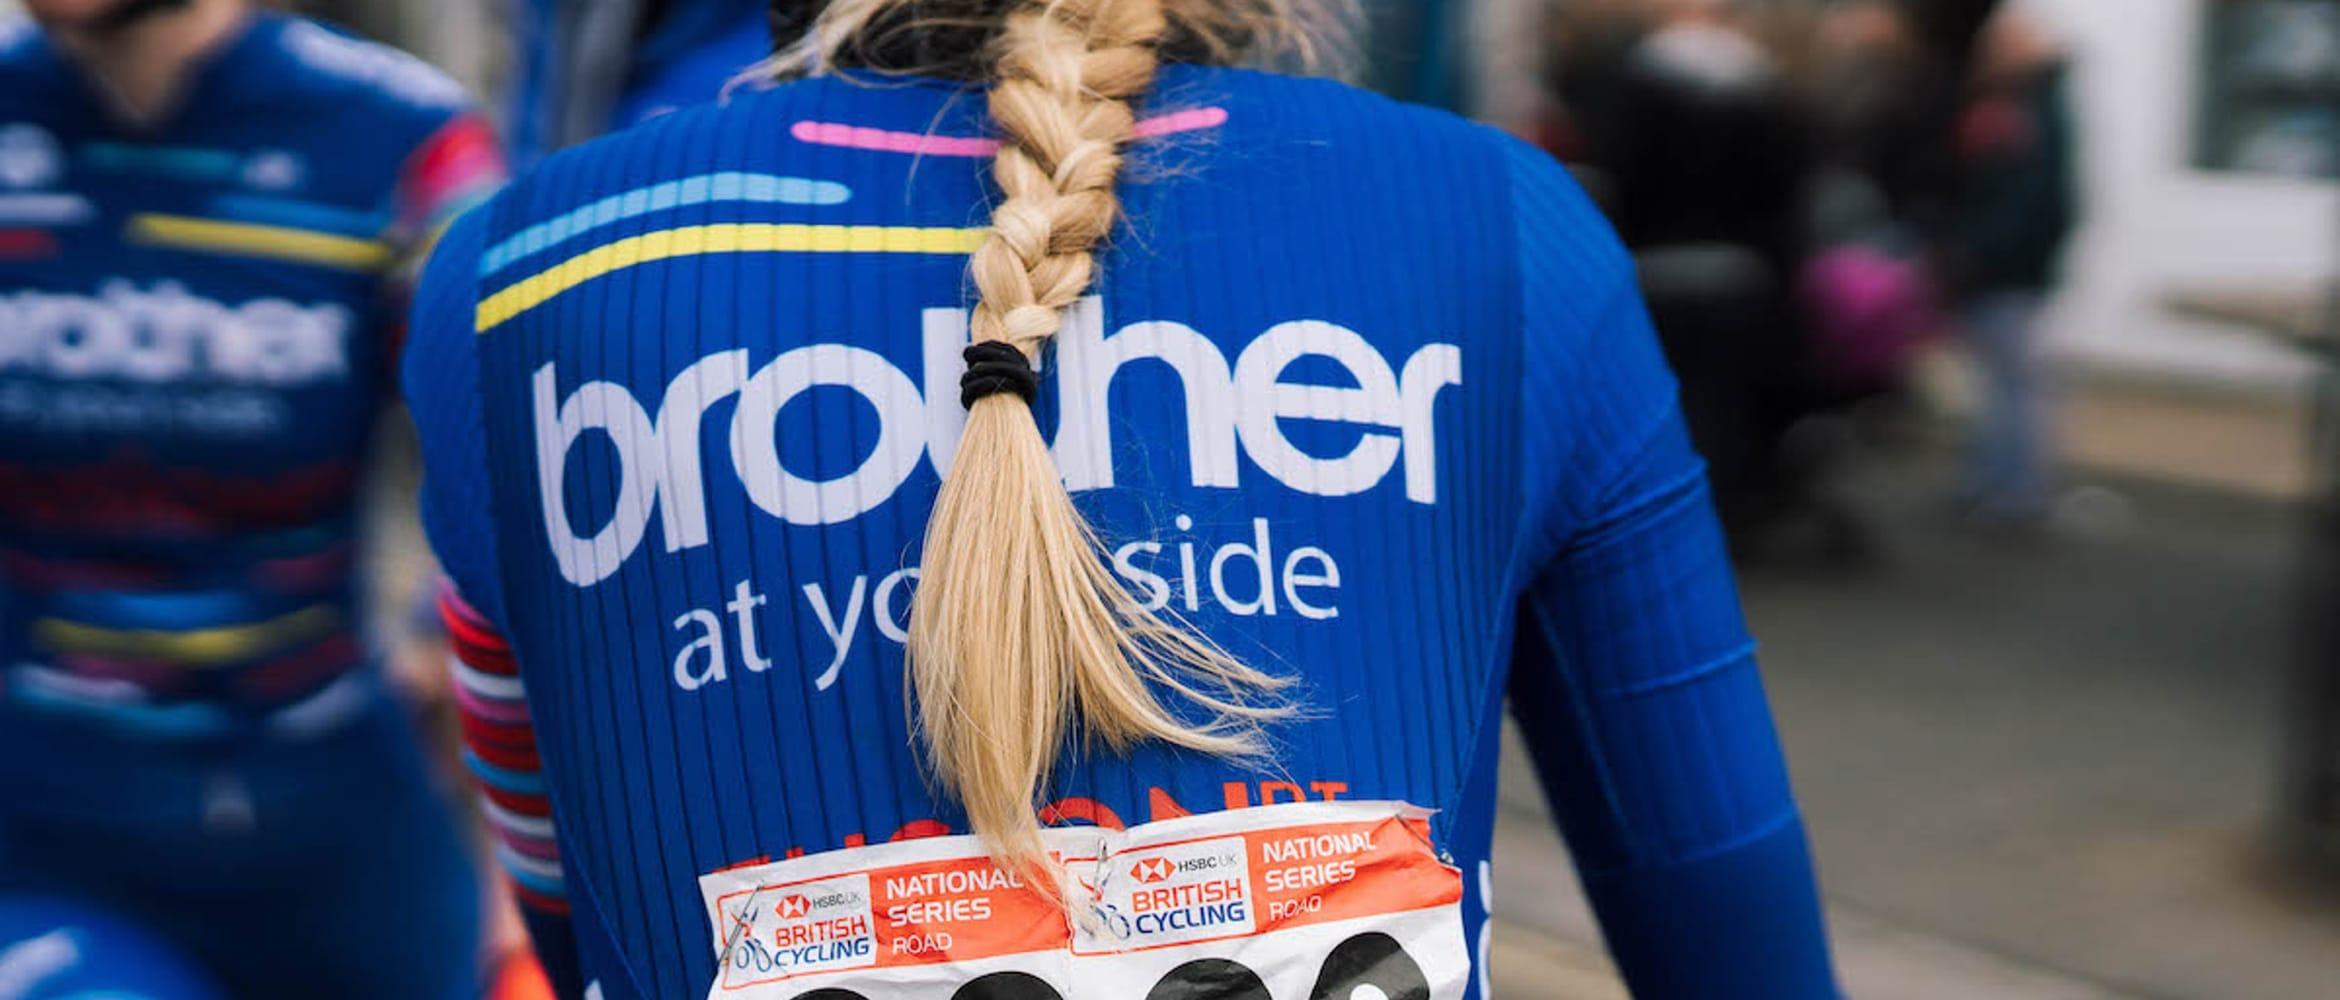 Close-up of Brother UK-FusionRT cyclist's back wearing team jersey